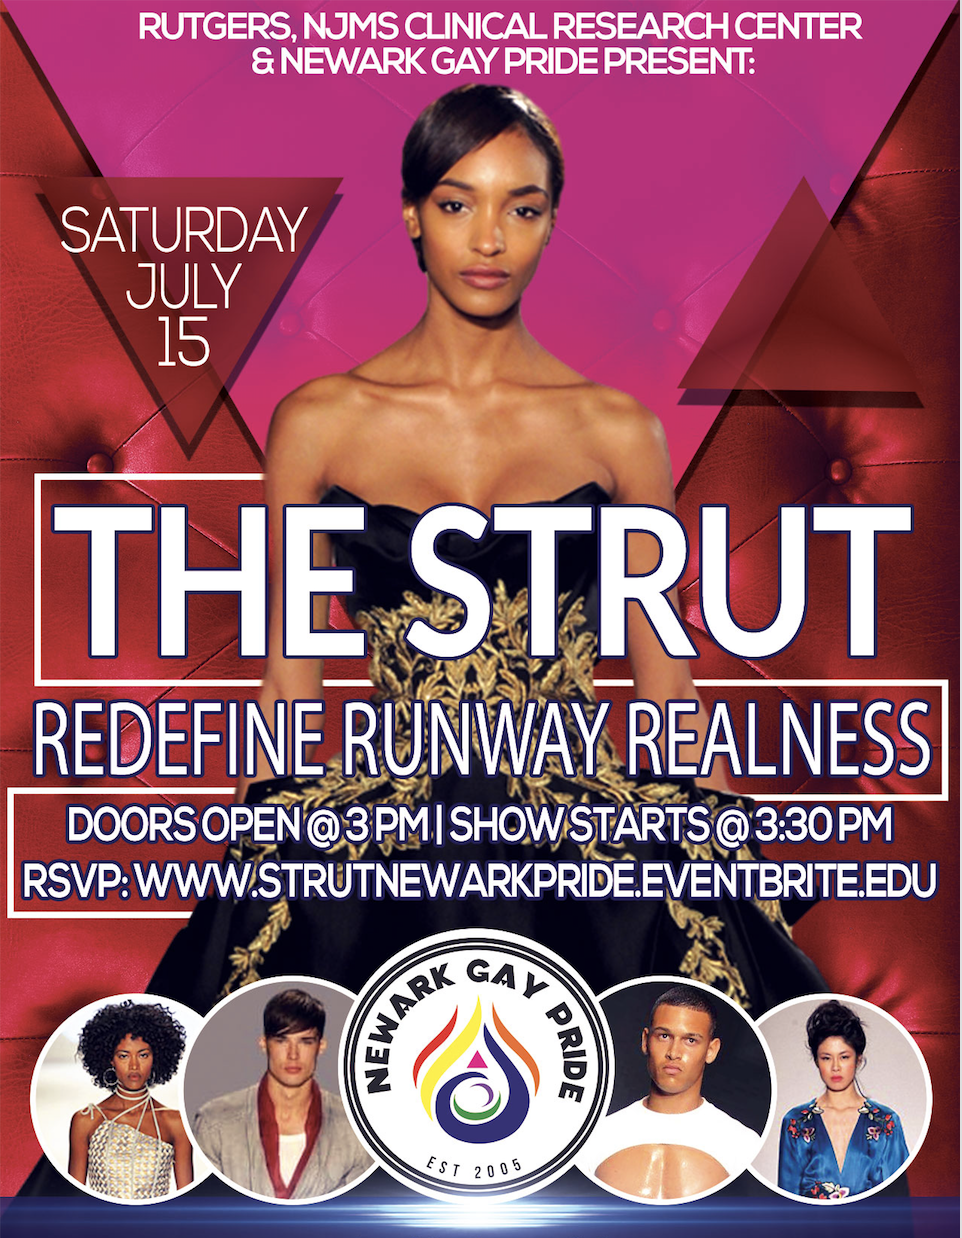 Saturday, July 15th - 3pmHealth SymposiumSTRUT Fashion ShowRutgers University - NewarkPaul Robeson Campus Center350 Martin Luther King Jr Blvd, Newark, NJ